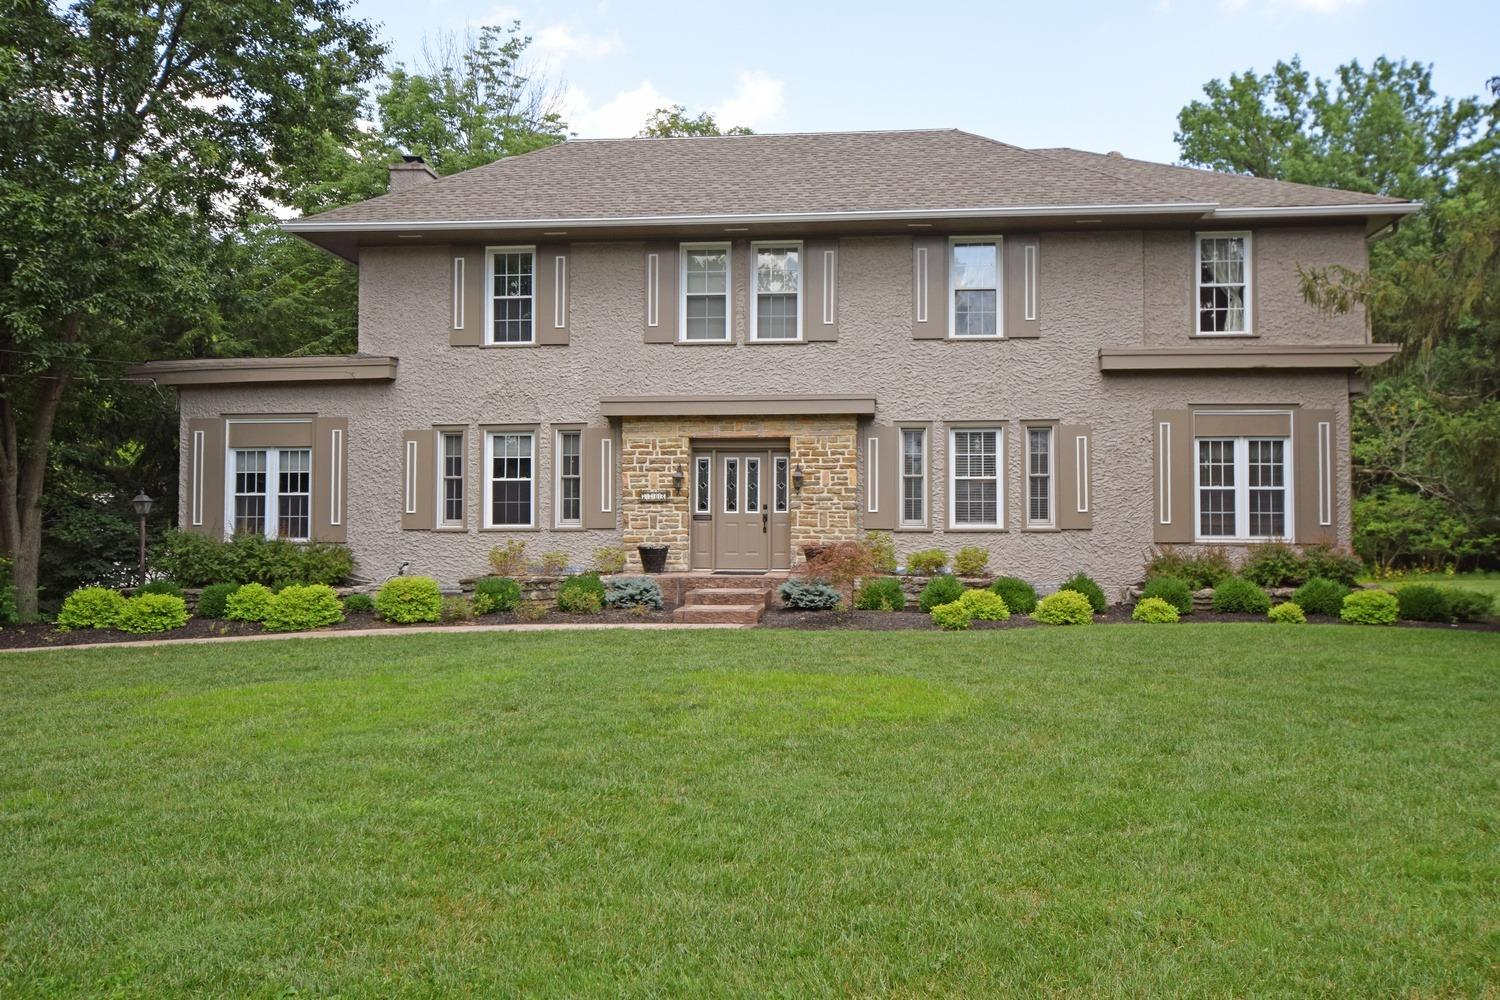 Property for sale at 7202 Winding Way, Amberley,  Ohio 45236